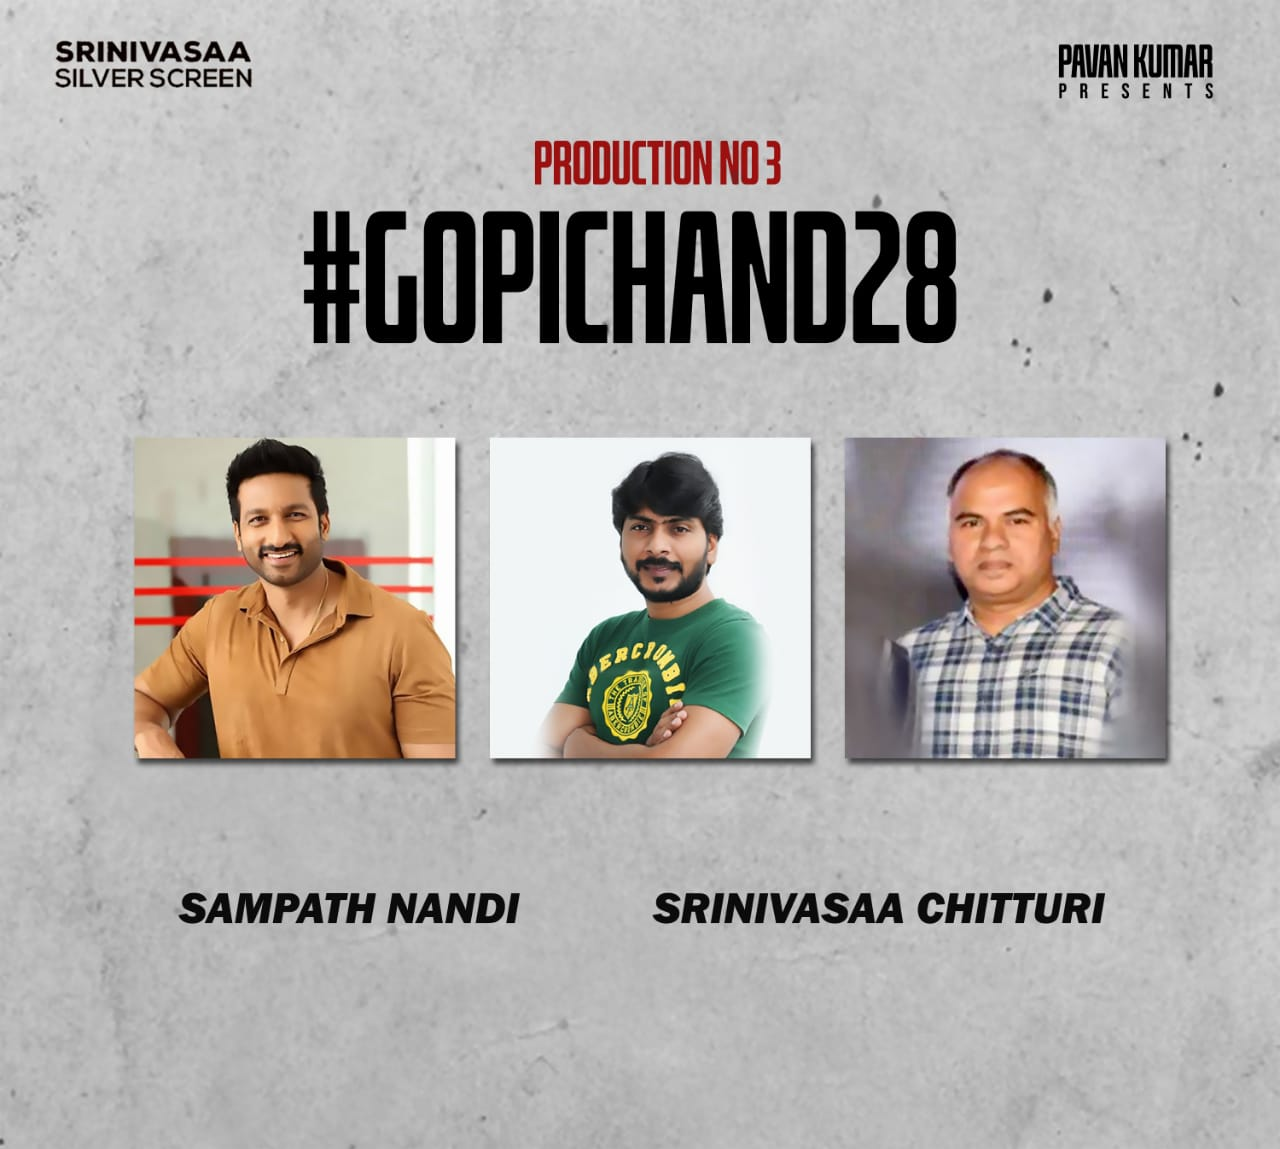 Gopichand, Sampath Nandi's Film in Srinivasaa Chitturi's Production